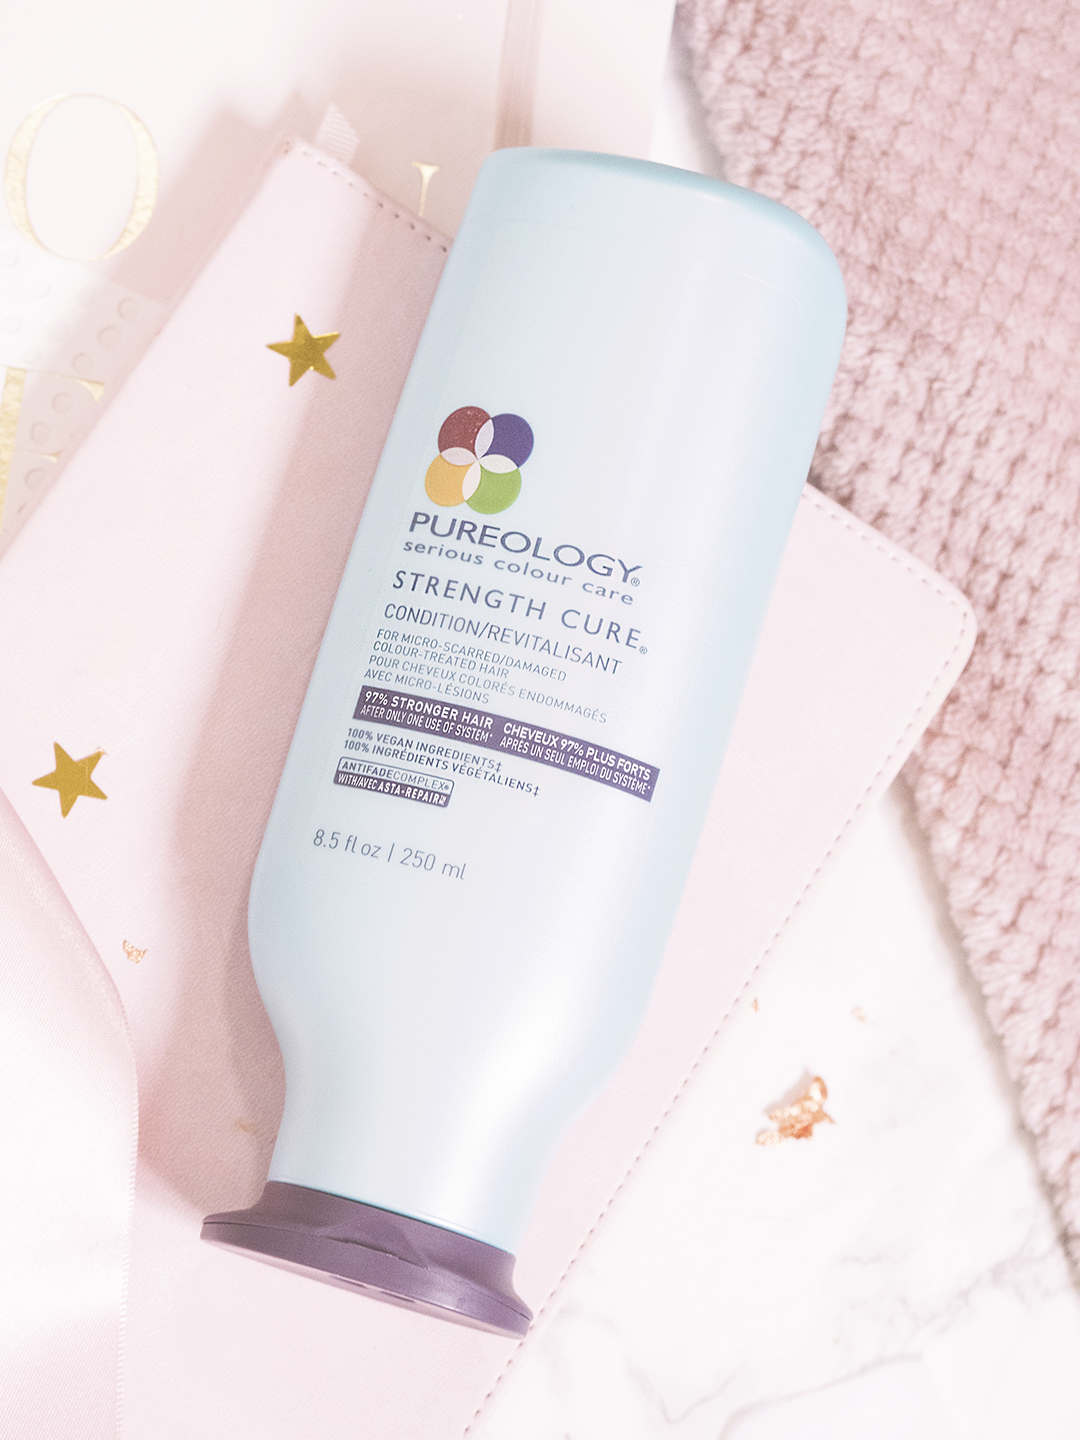 Haircare that Saved My Blonde Hair Pureology Strength Cure